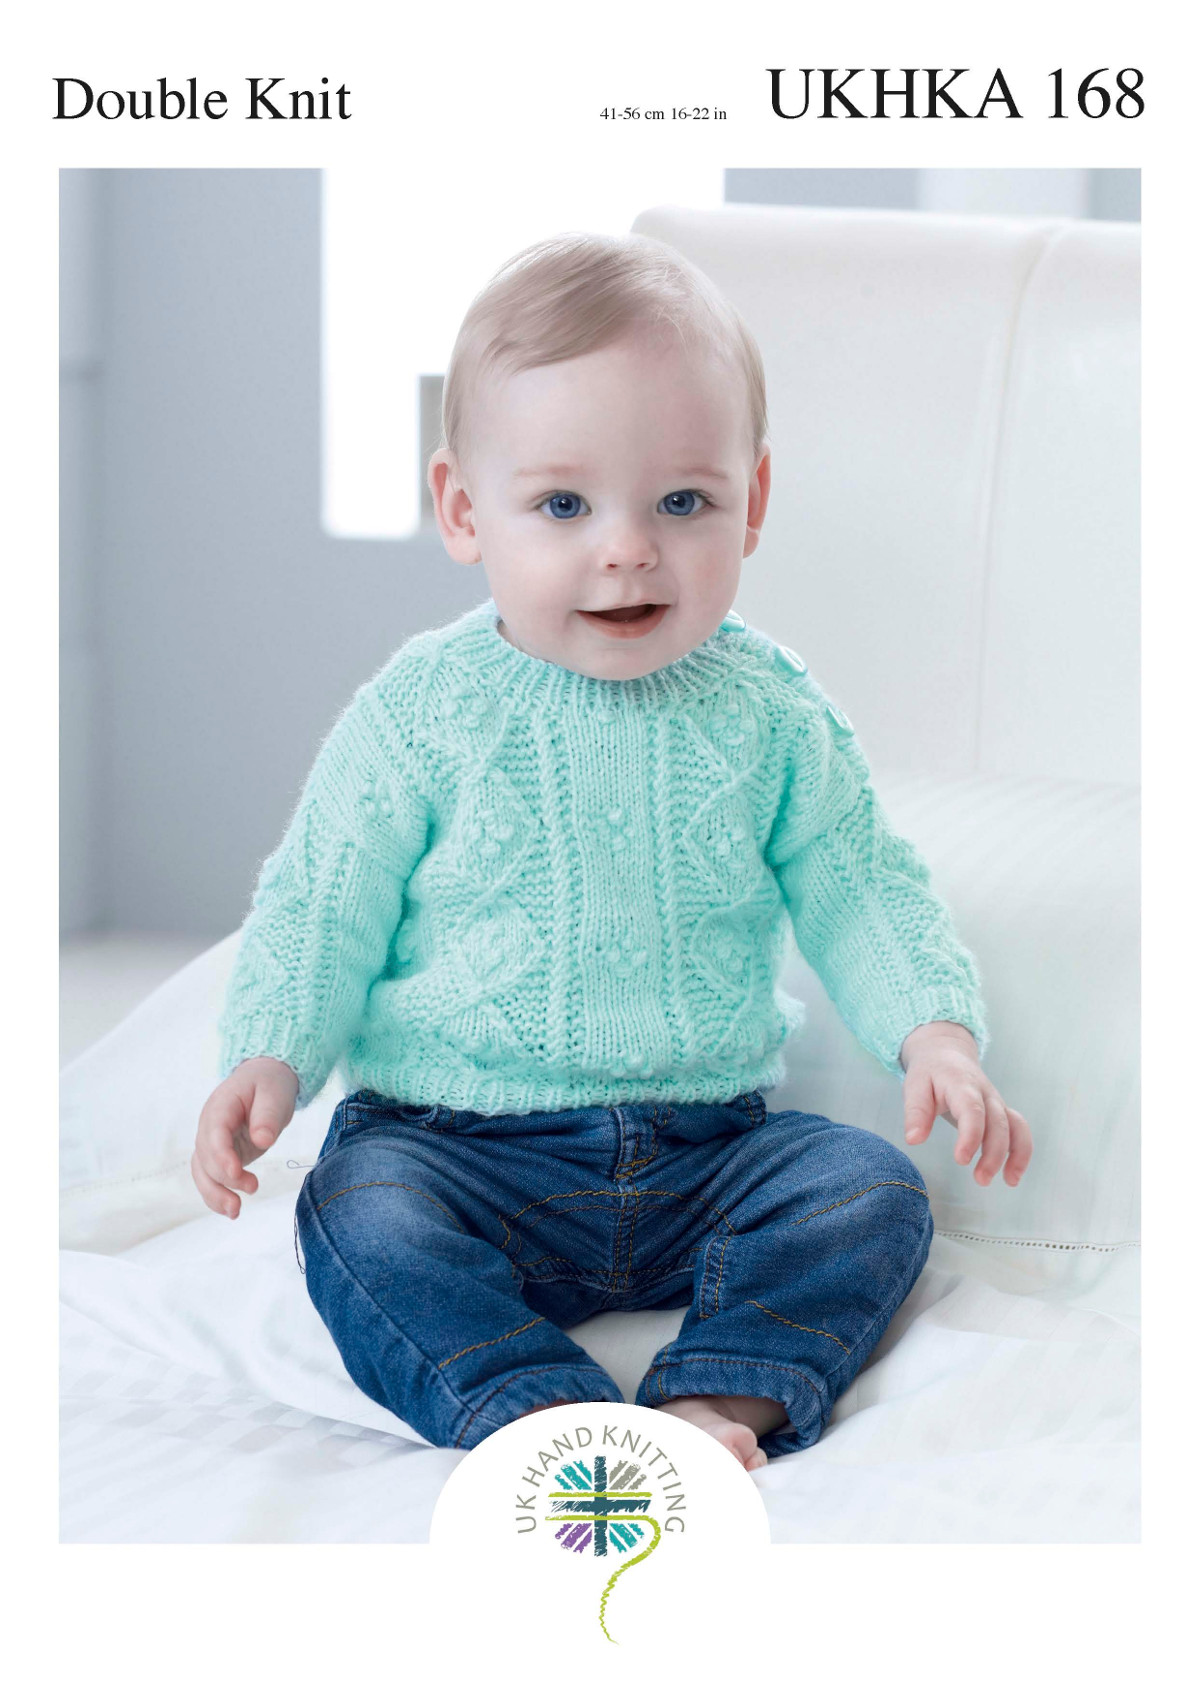 Ukhka 168 baby double knitting pattern cable knit sweater jumper please look at images below for the chart showing measurements yarn and materials requirement to make this garment this is a ukhka baby knitting pattern bankloansurffo Choice Image